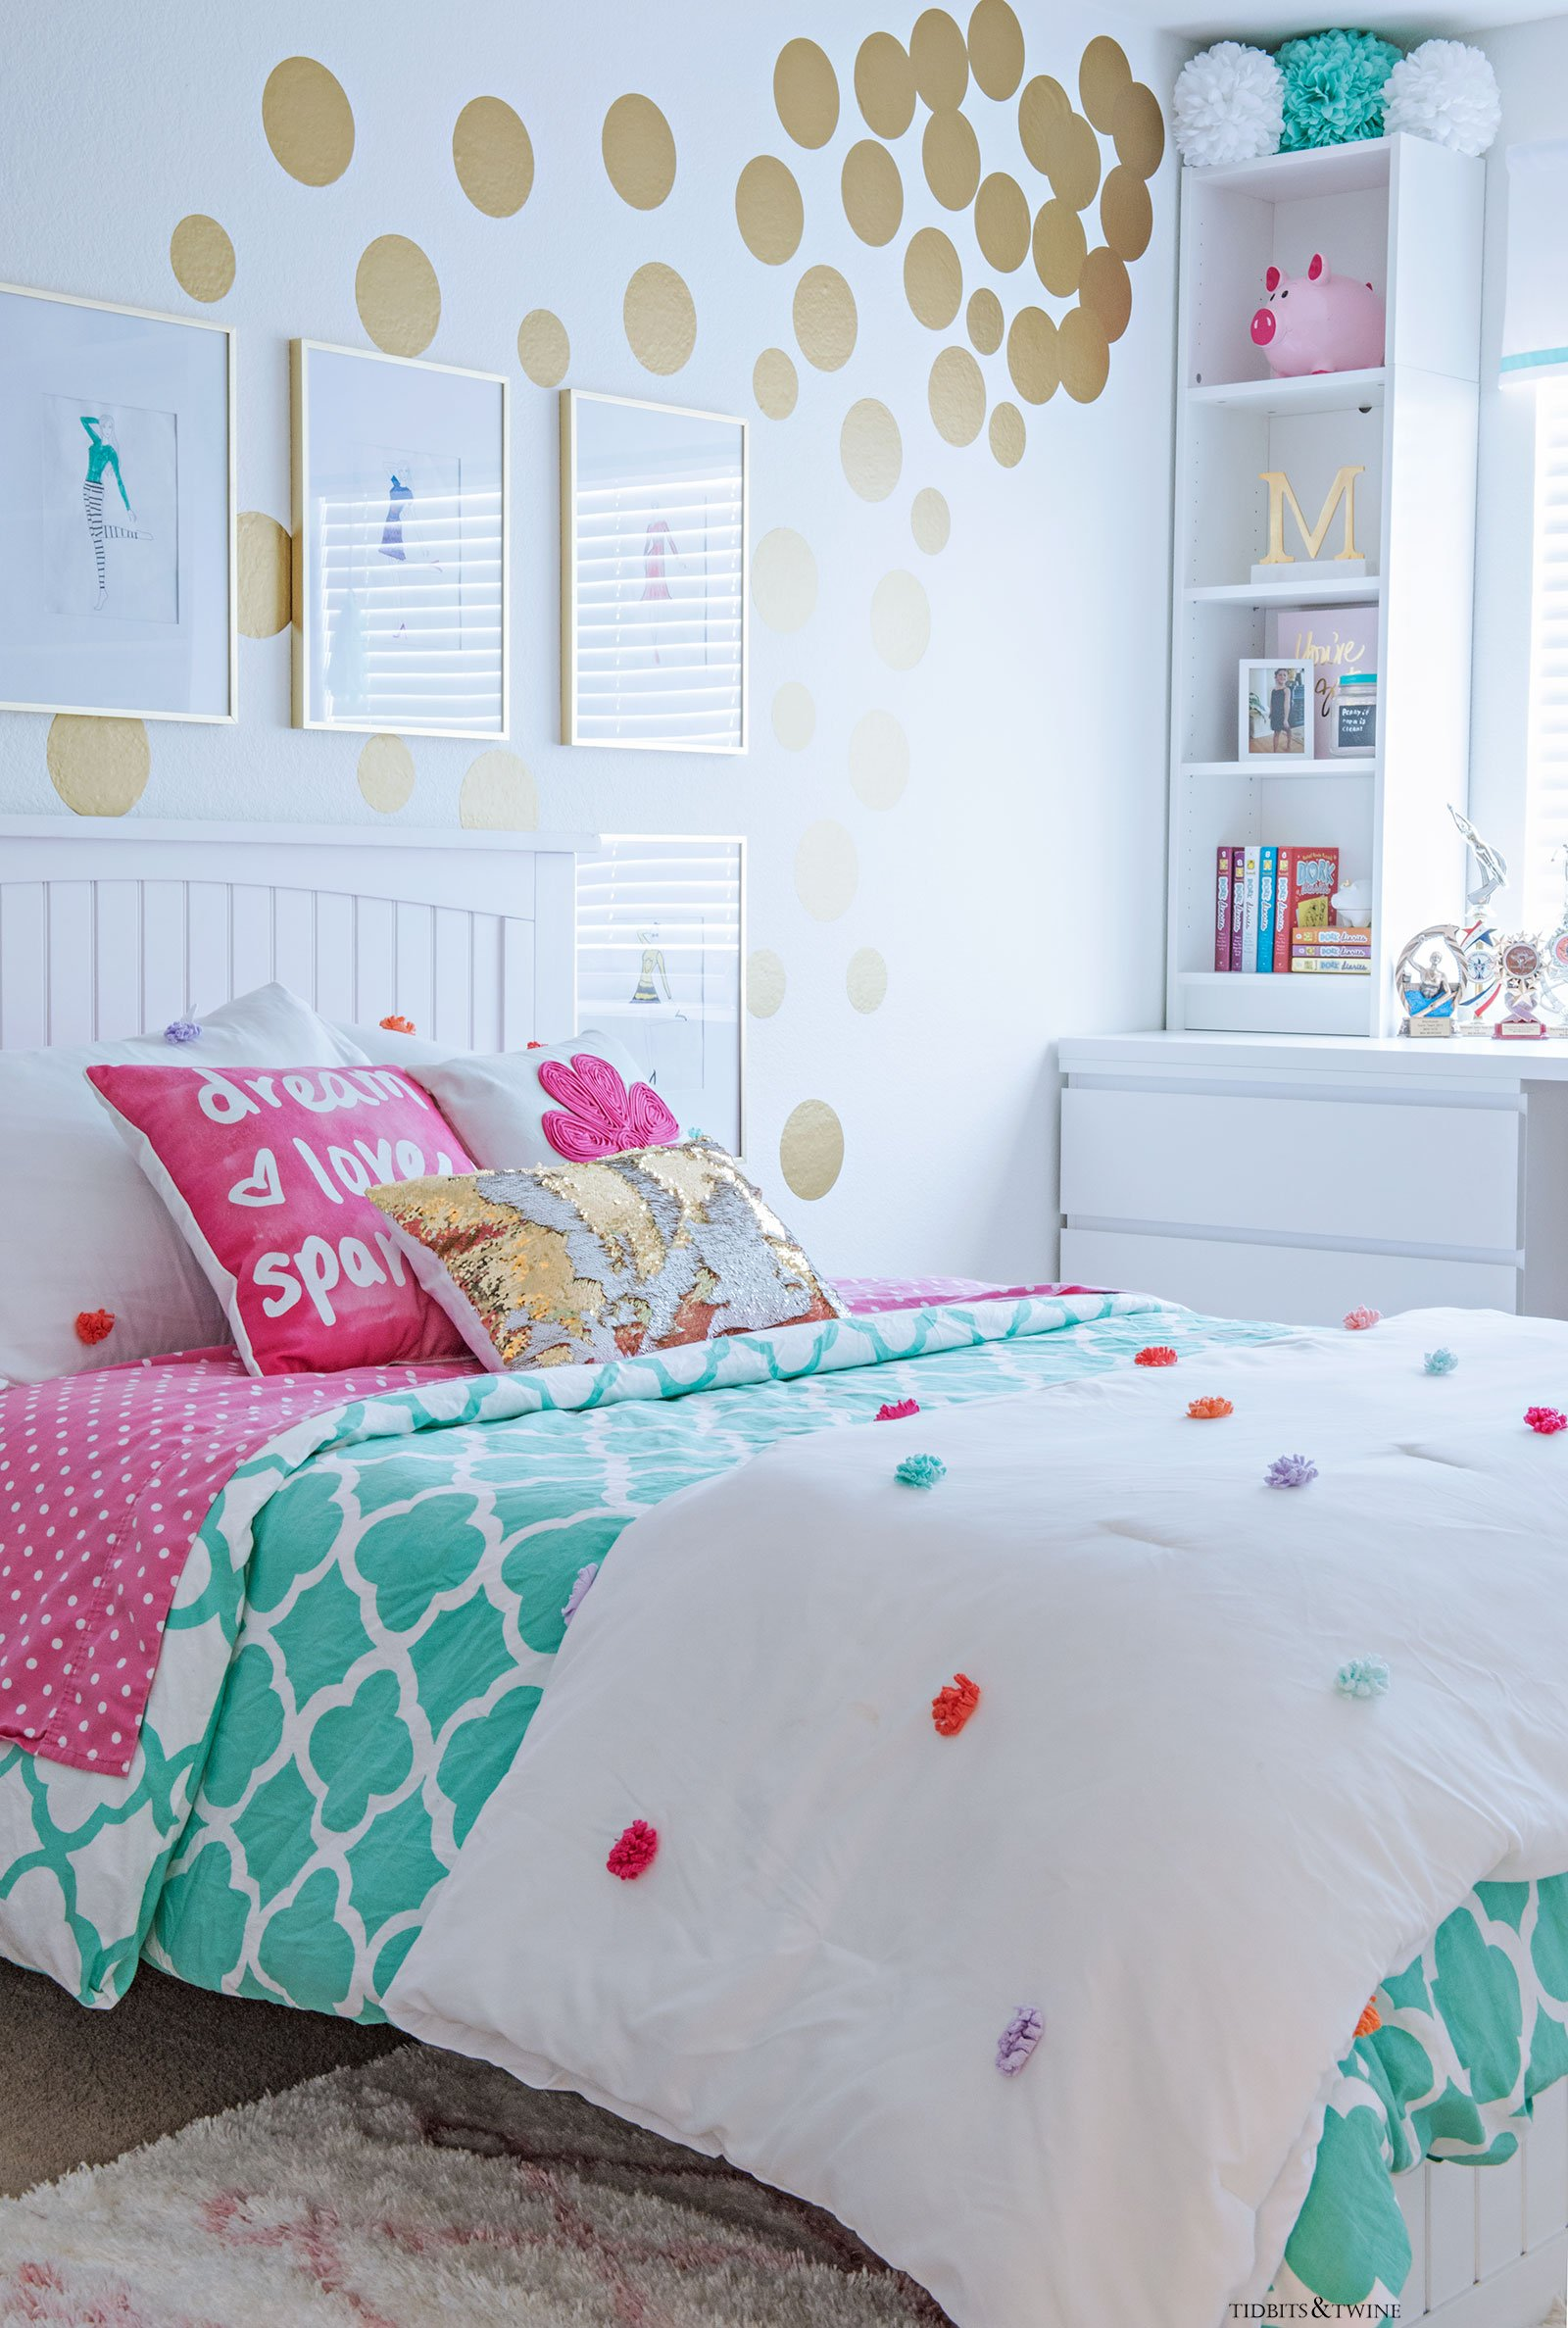 Teen Girl Bedroom Decorating Ideas - Contemporary with IKEA Furniture in Turquoise and White and Gold